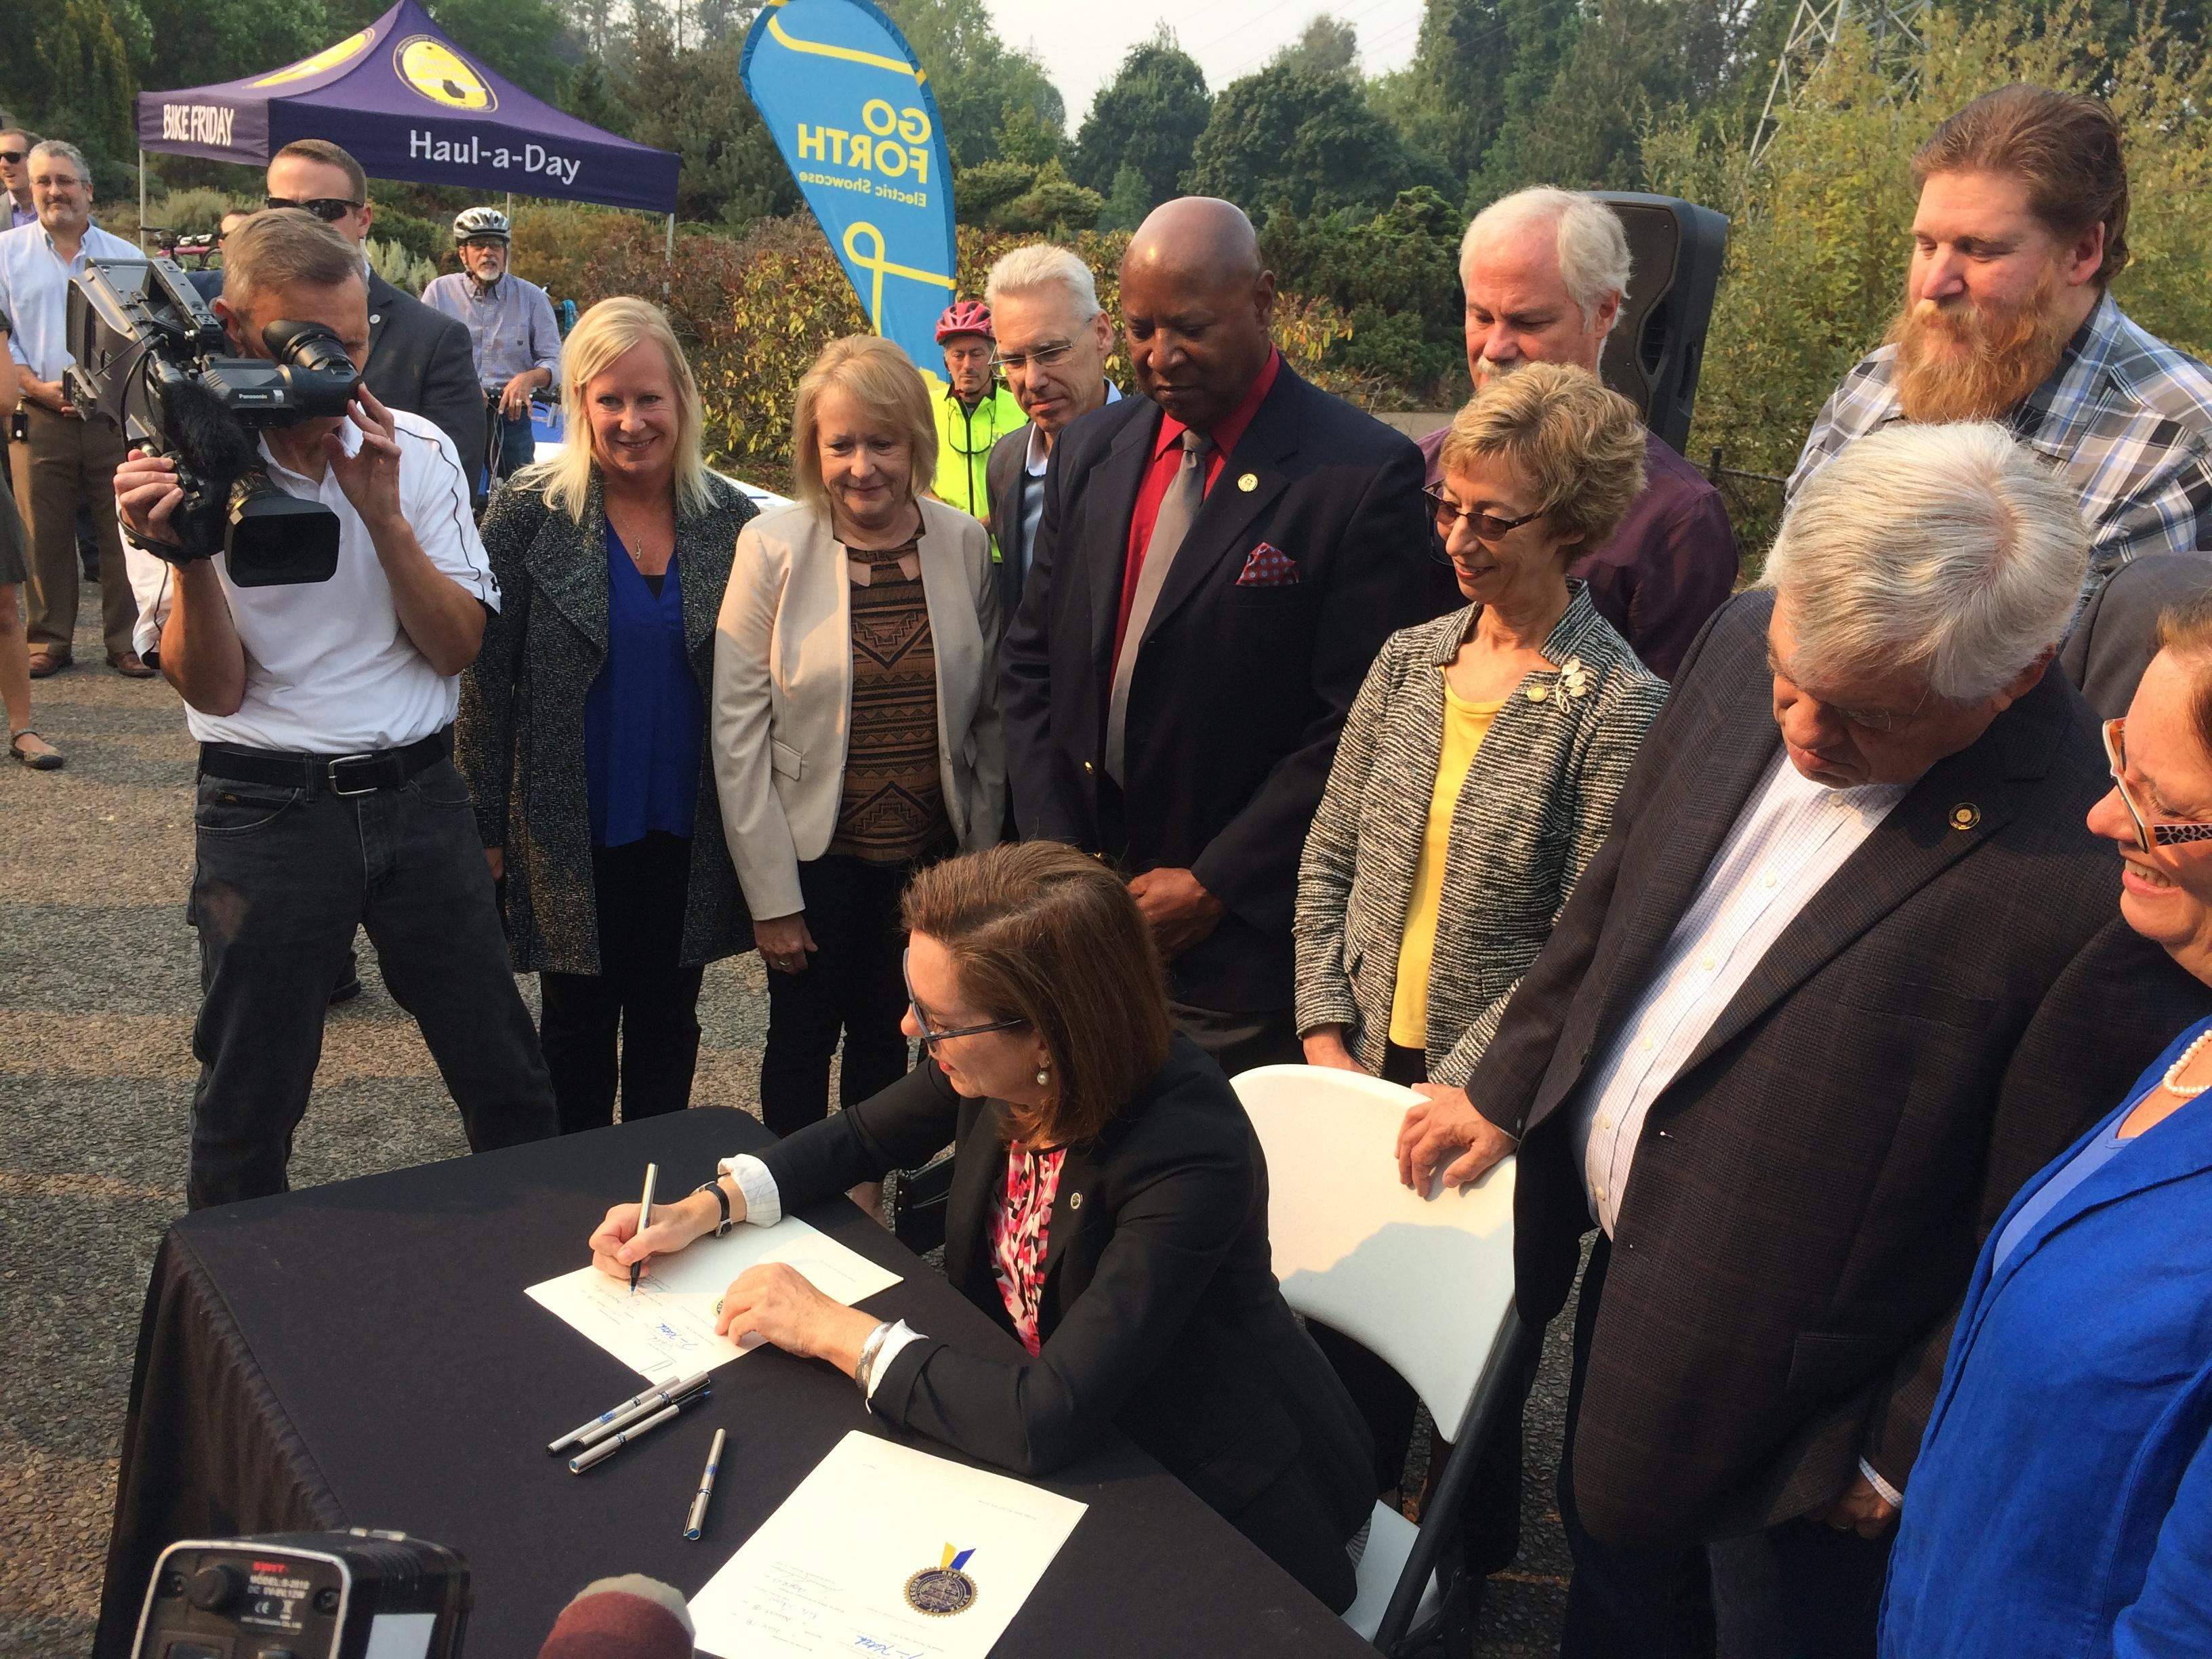 Governor Kate Brown signed in a Transportation bill on Tuesday that will allocate $8 million towards improvements around Lane County.